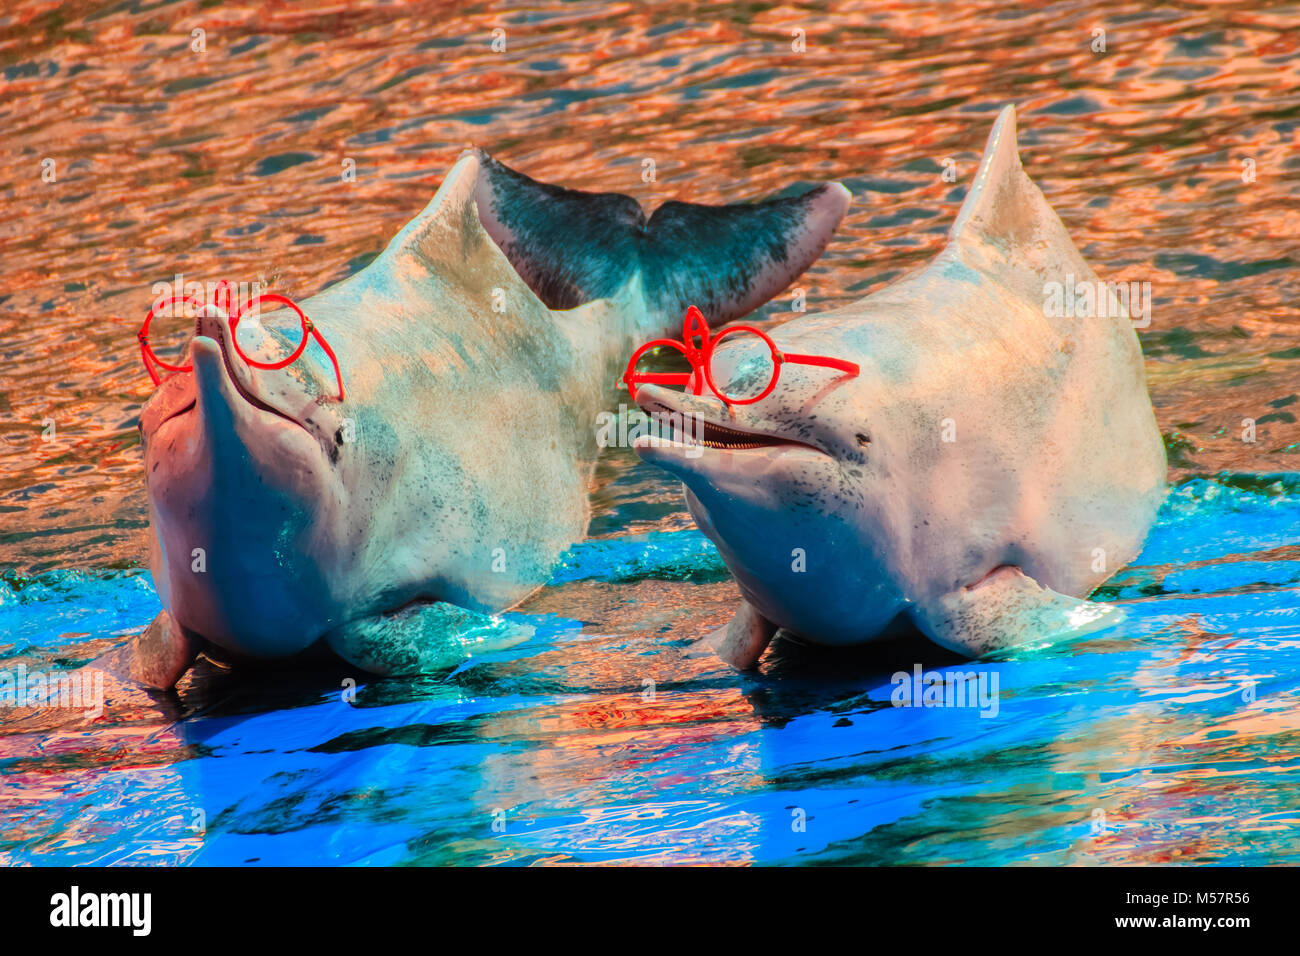 Cute Indo-Pacific humpback dolphin (Sousa chinensis) ,or Pink dolphin, or Chinese white dolphin is wearing sunglass - Stock Image